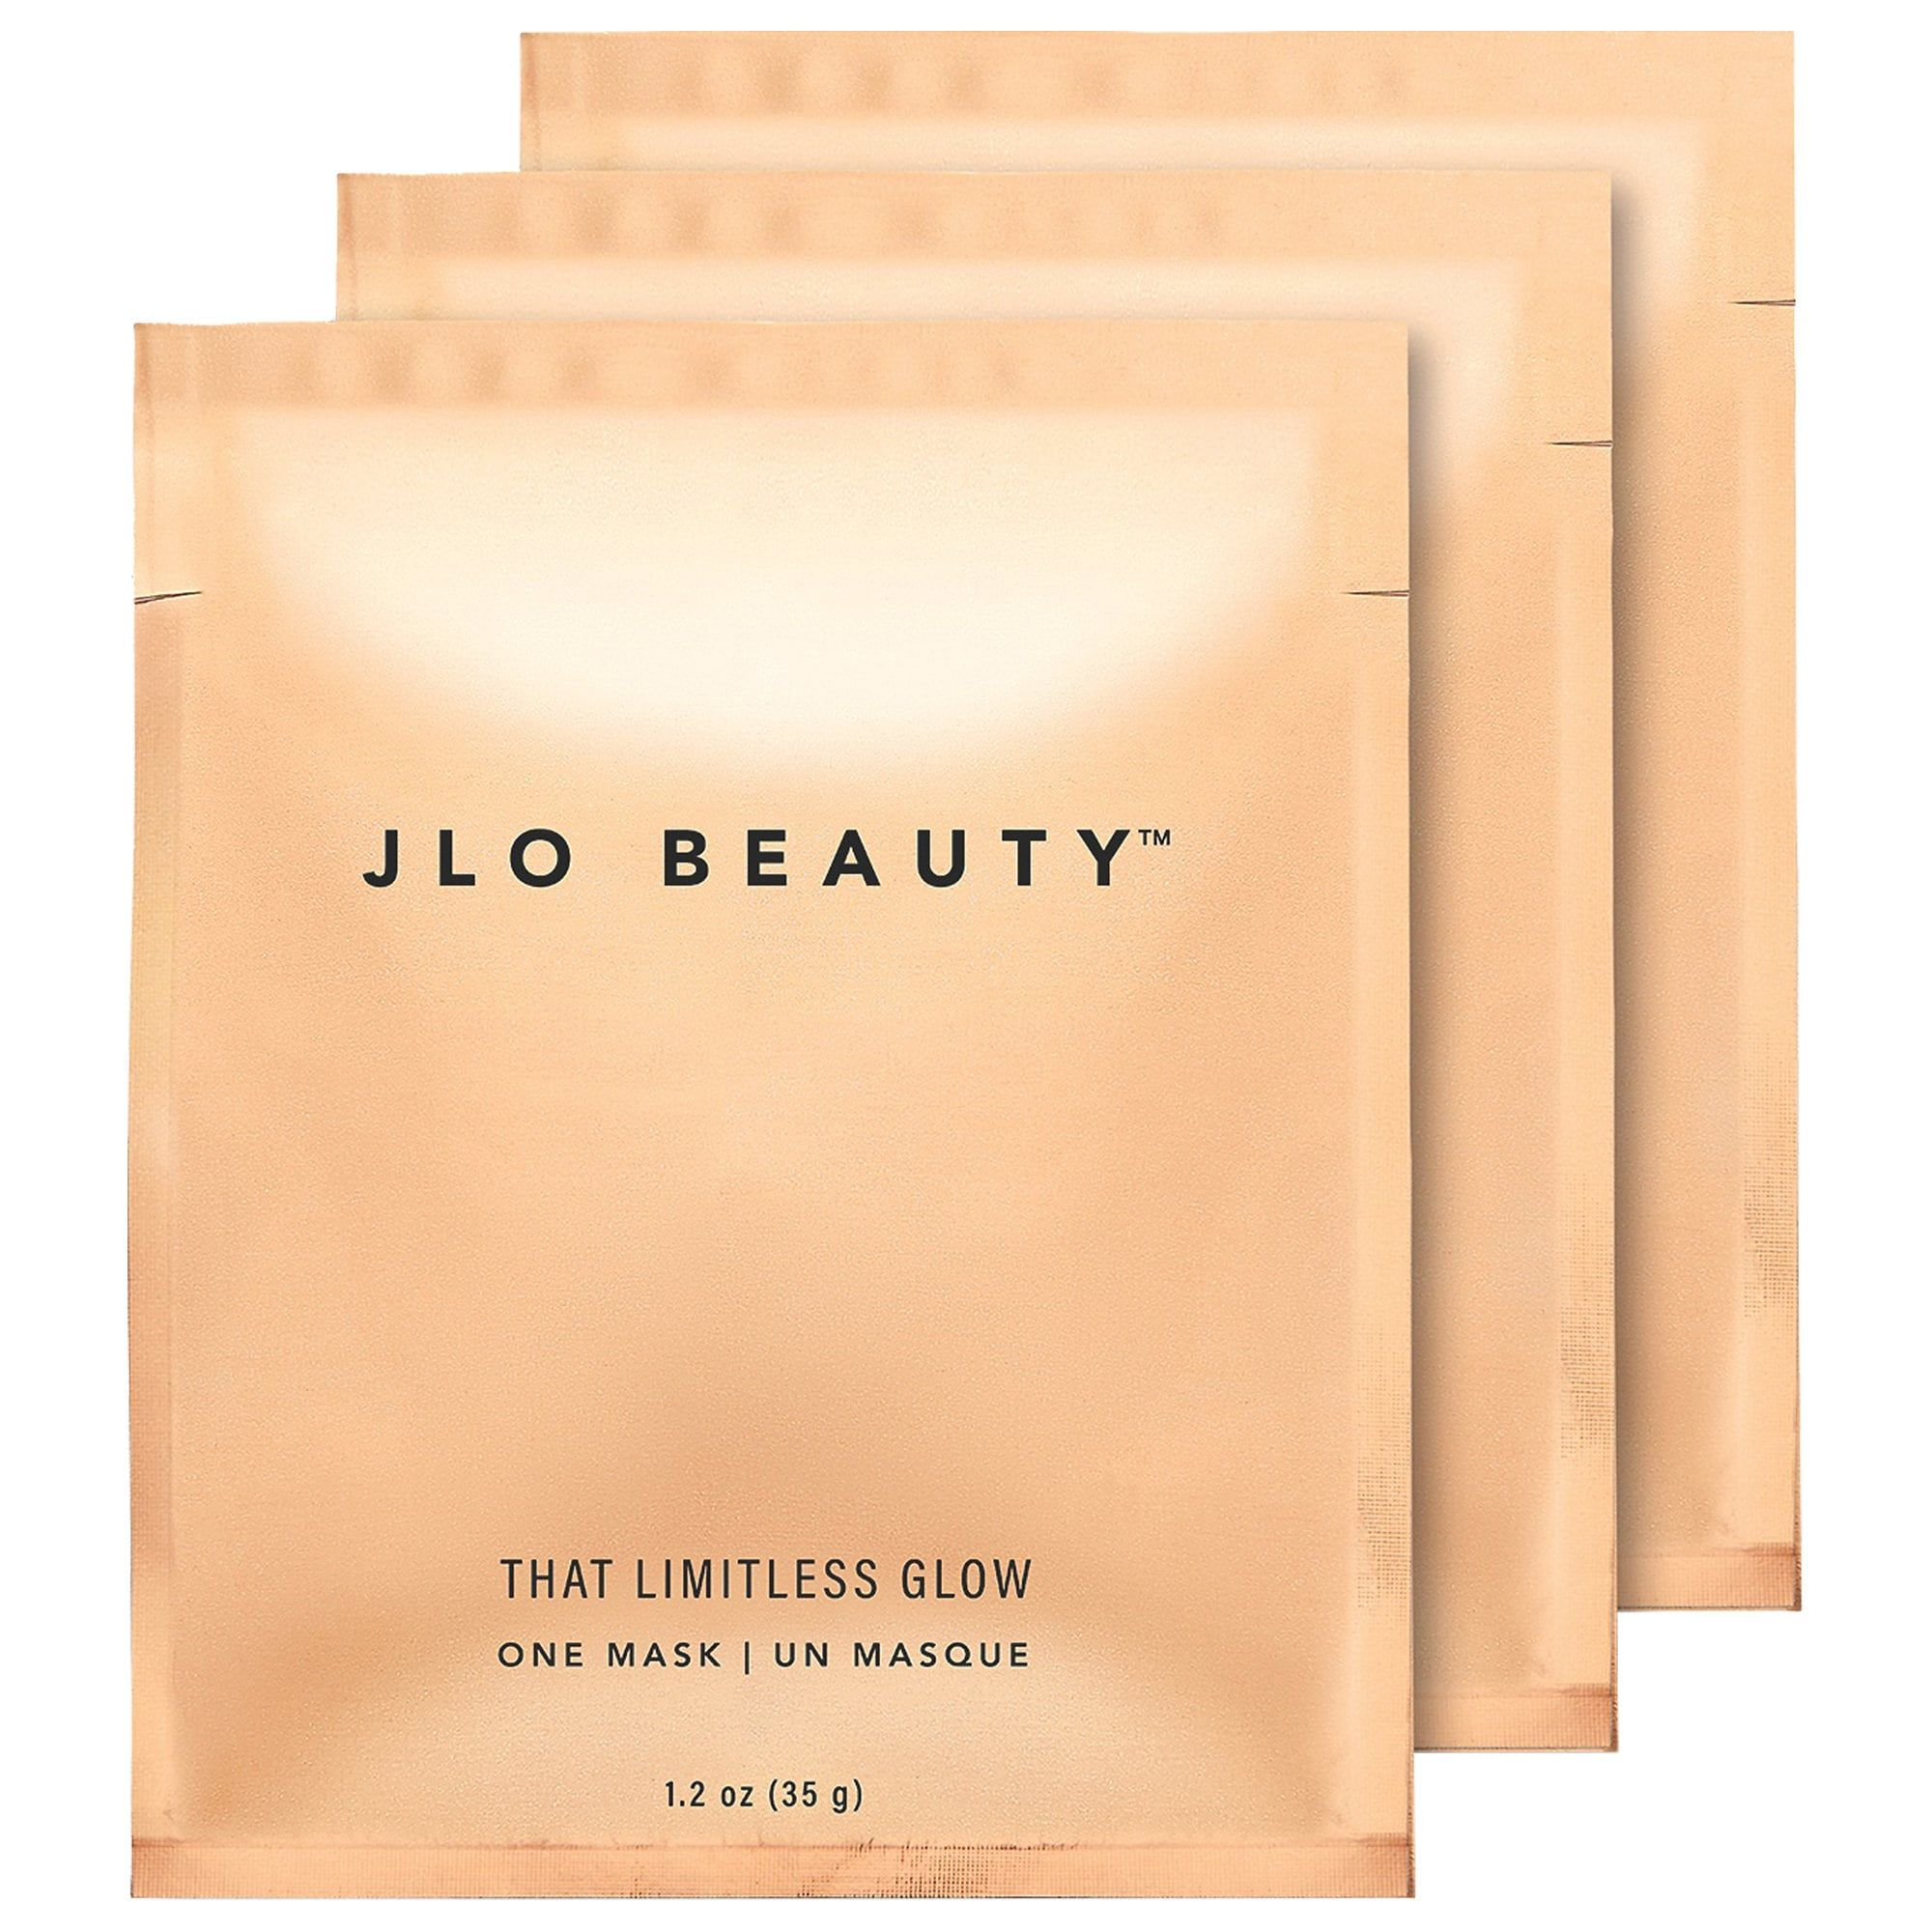 This limitless luminescent sheet mask